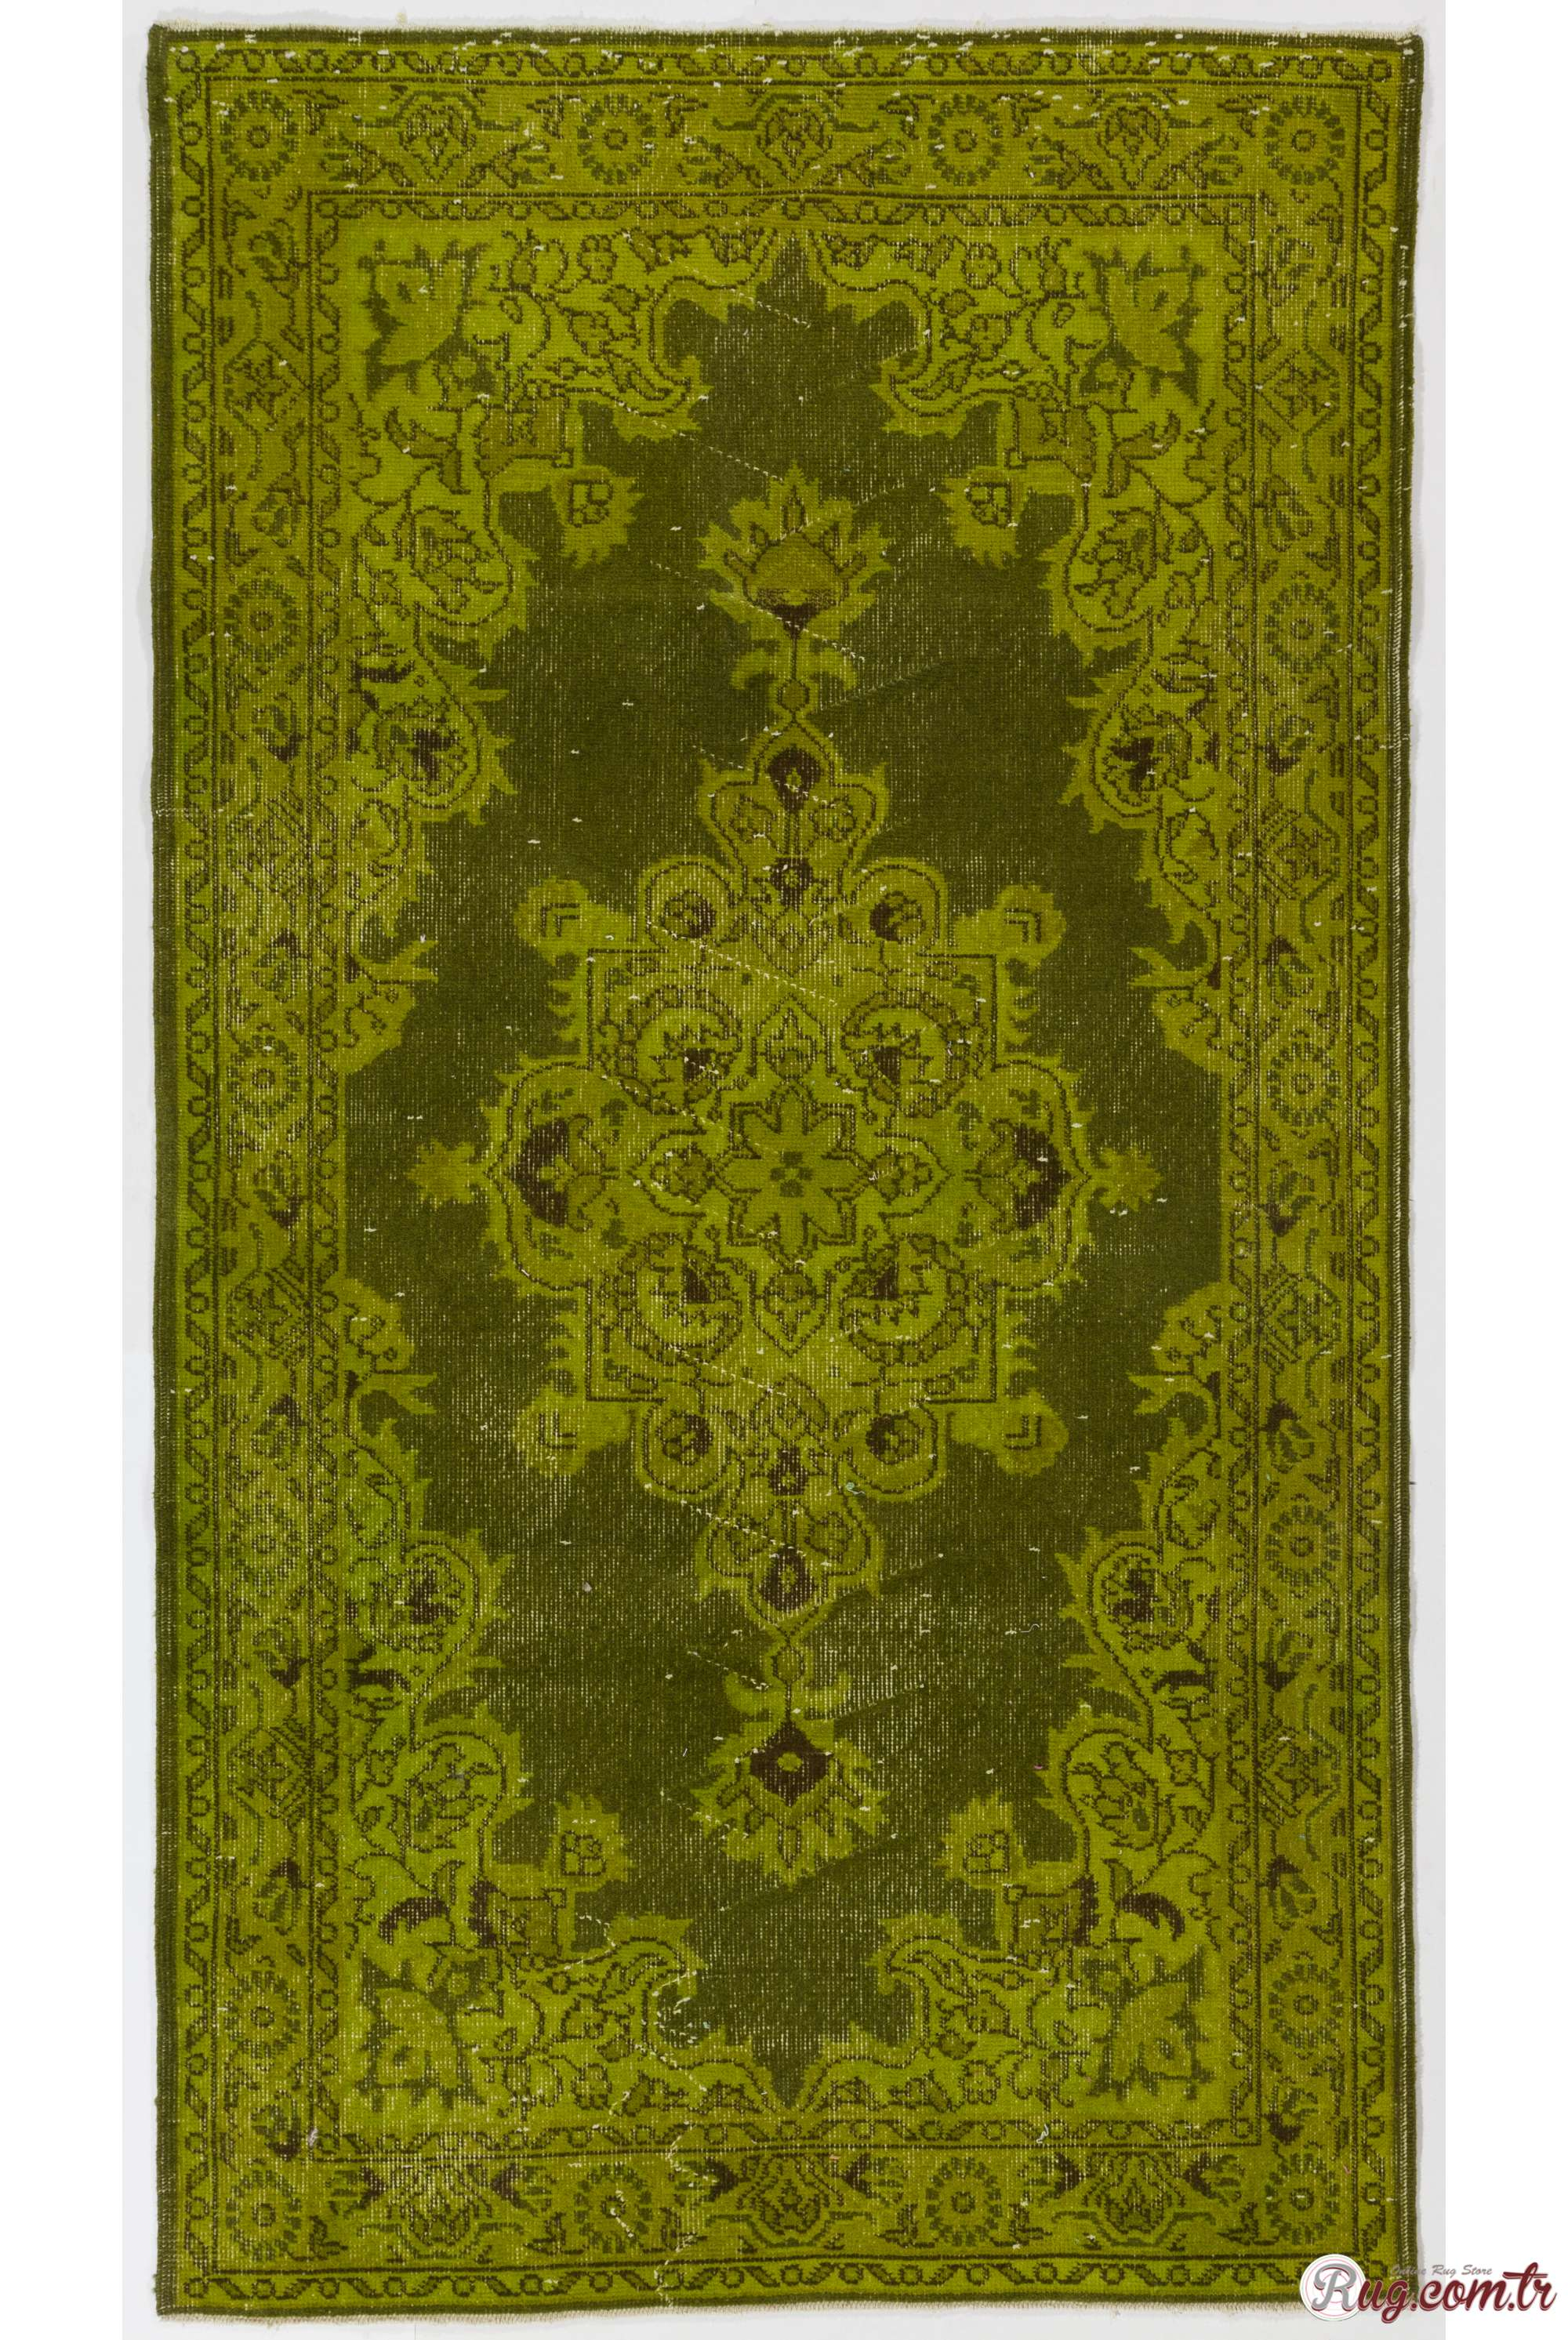 Olive Green Color Vintage Overdyed Handmade Turkish Rug